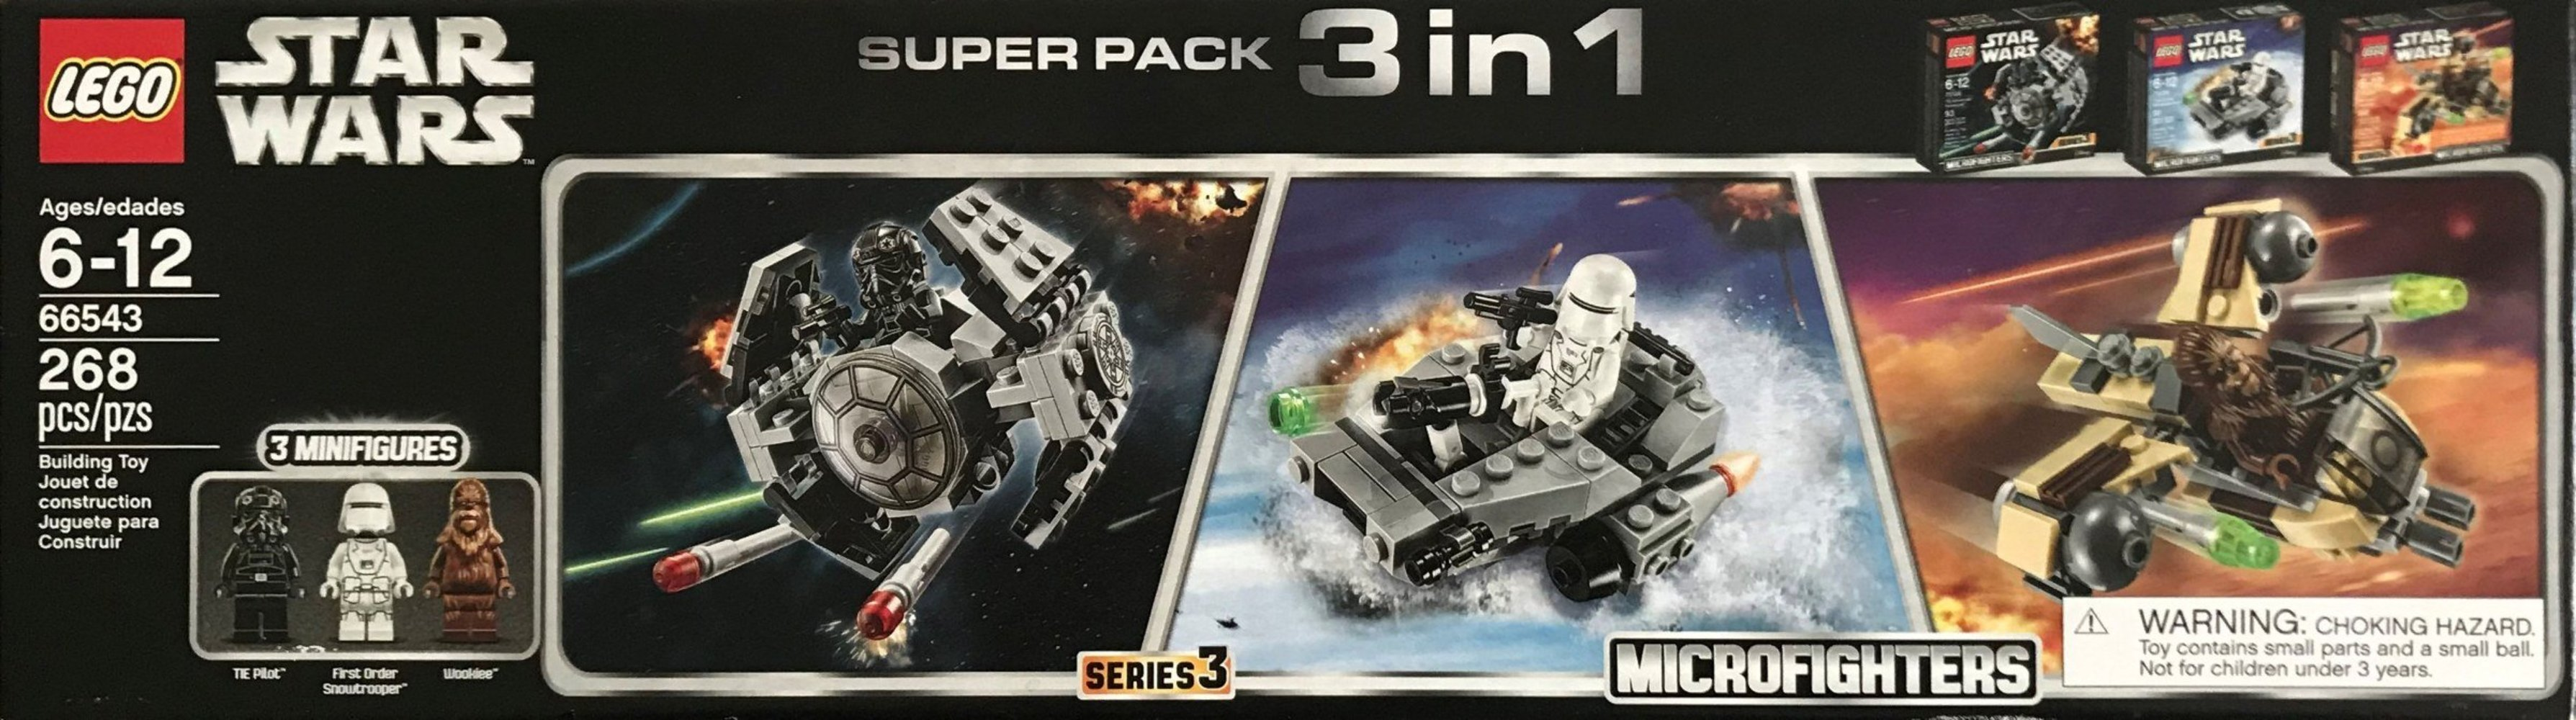 Microfighters Super Pack 3 in 1